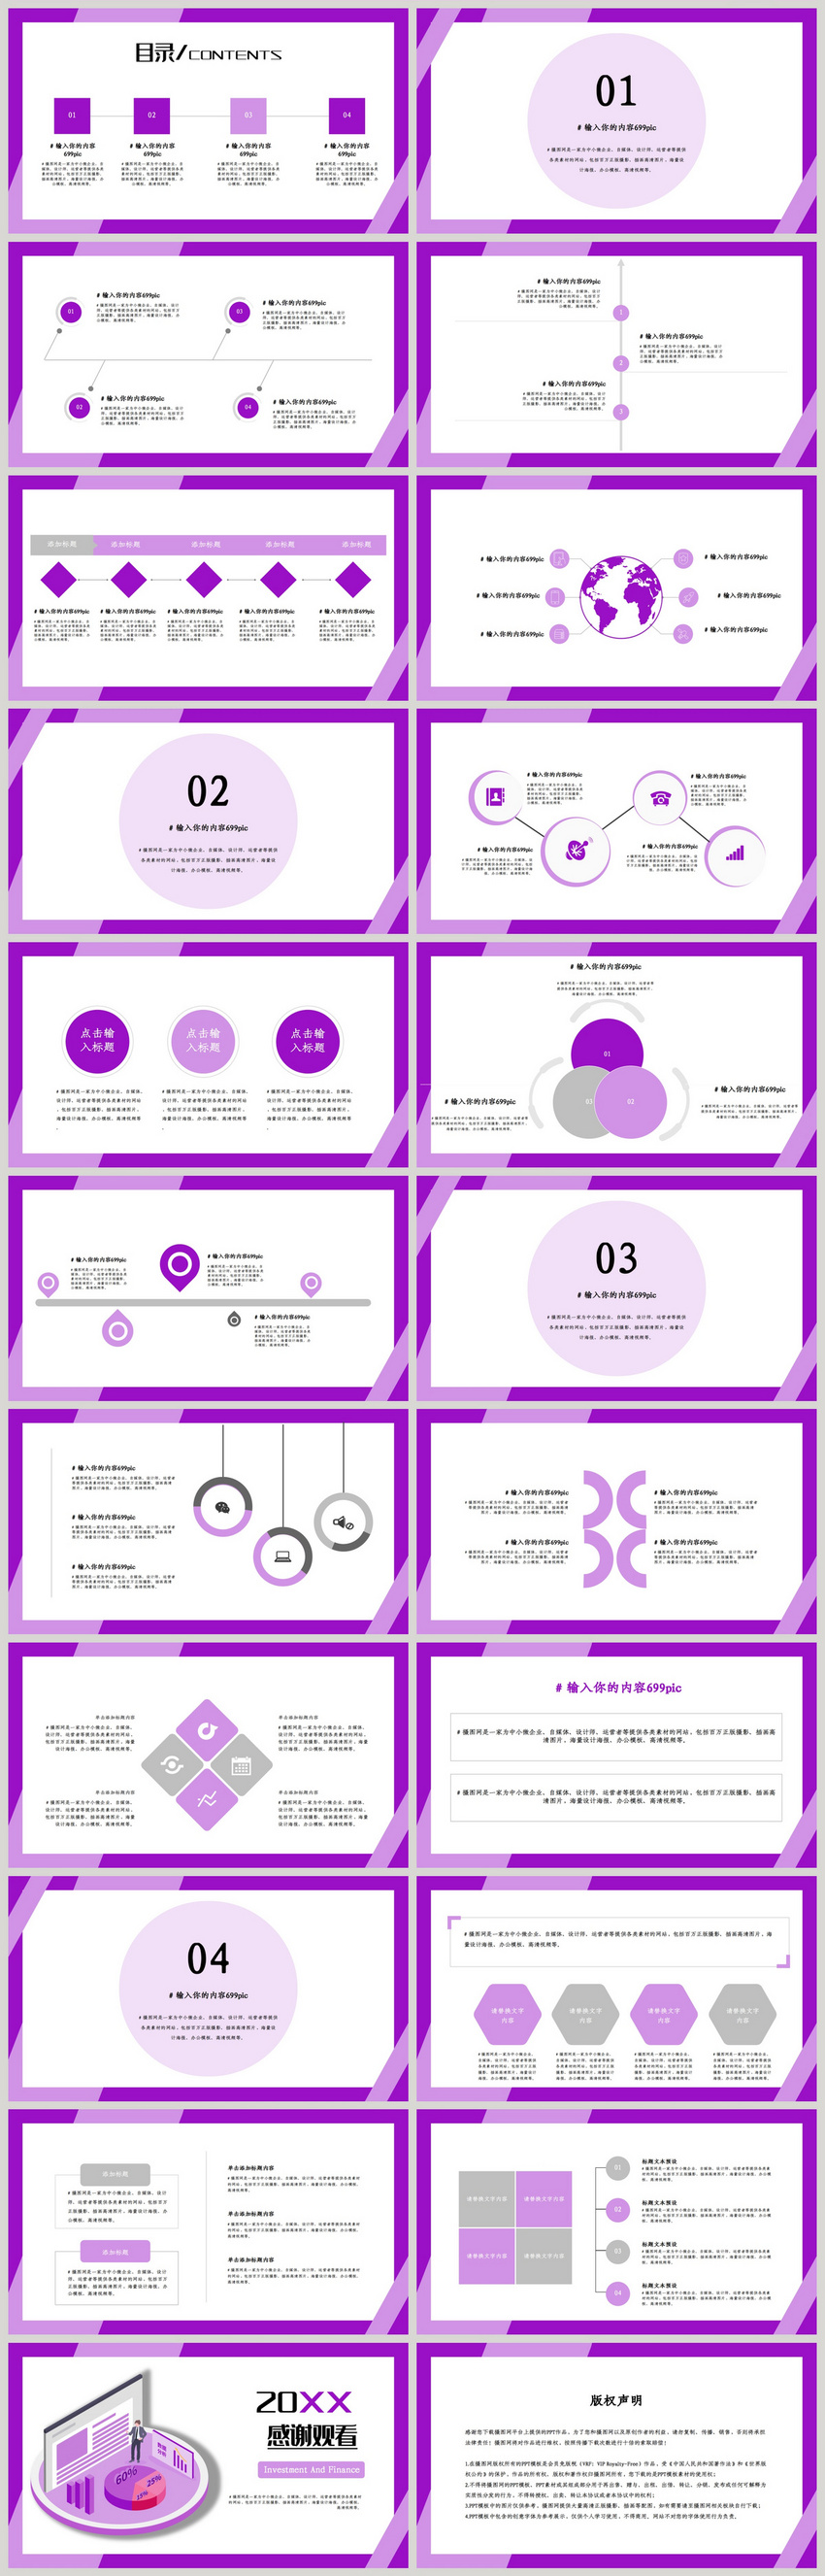 Investment Financial Analysis Ppt Template Powerpoint Templete Ppt Free Download 401249082 Lovepik Com